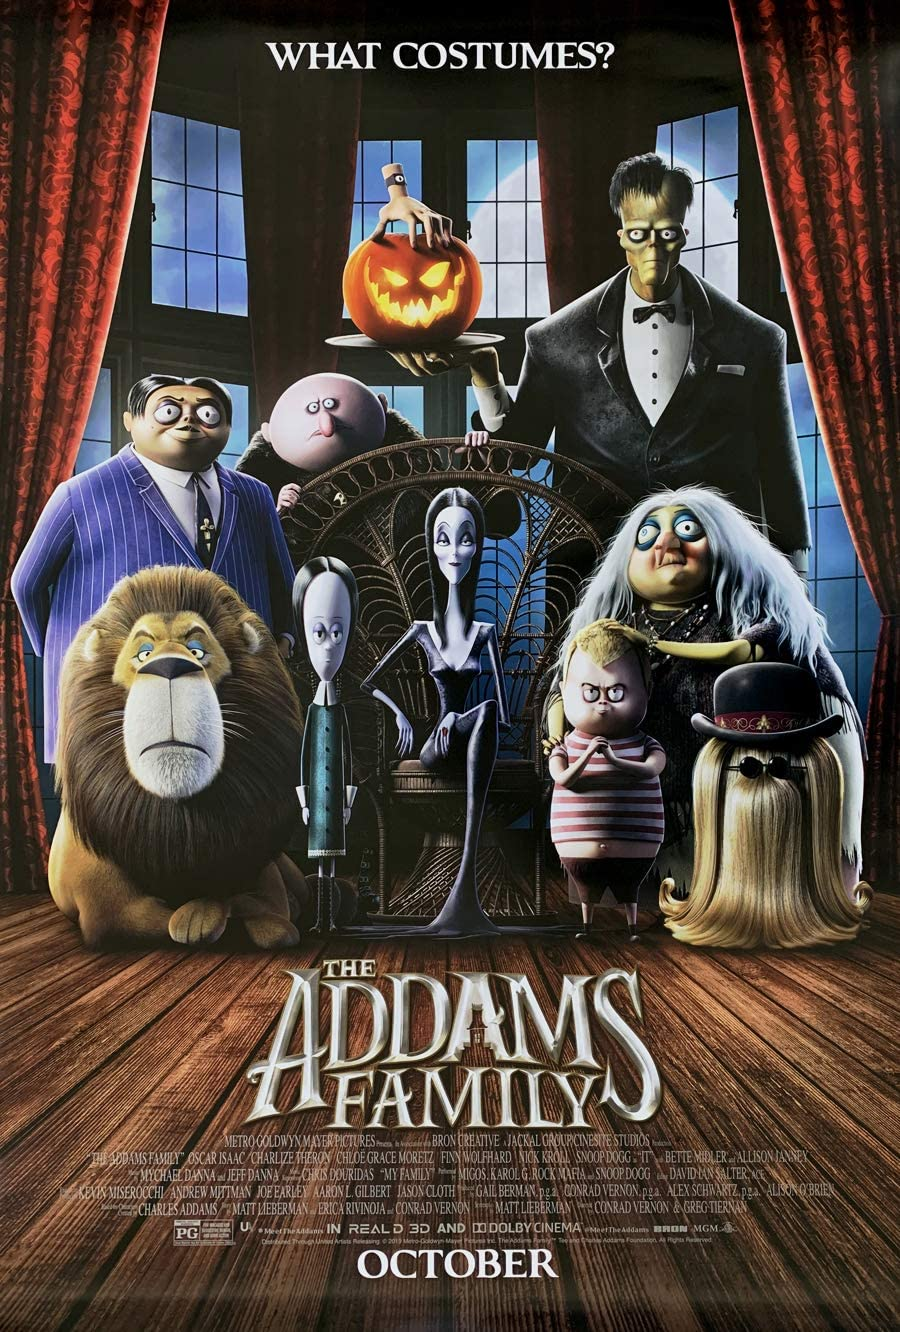 THE ADDAMS FAMILY MOVIE POSTER 2 Sided ORIGINAL Advance 27x40 CHARLIZE THERON